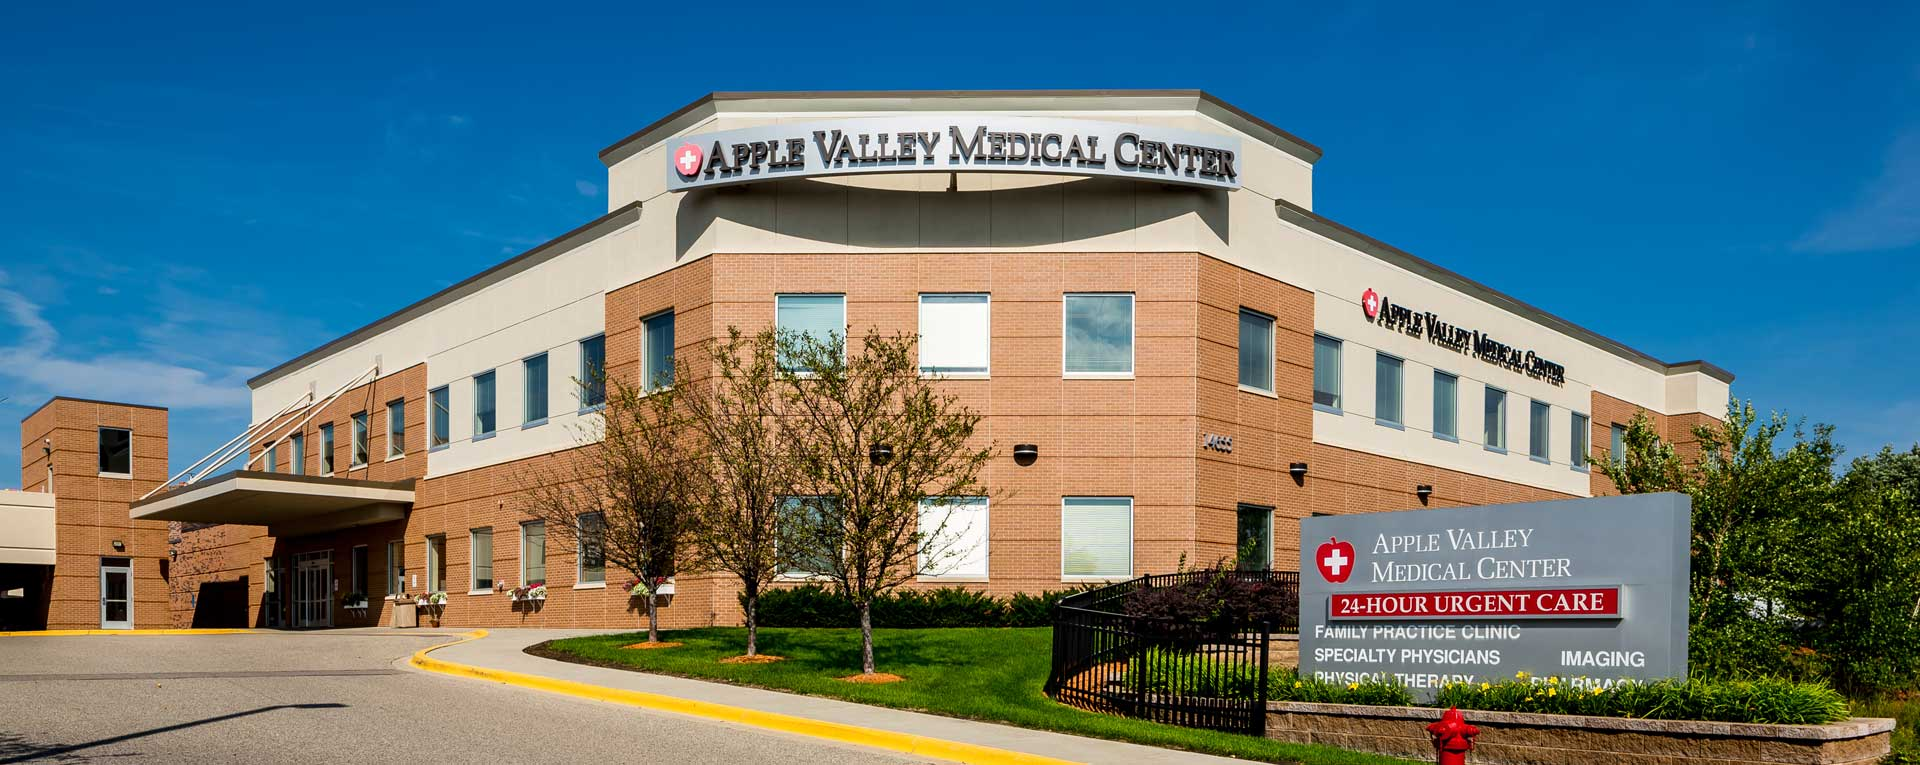 Apple Valley Medical Center - Apple Valley, MN